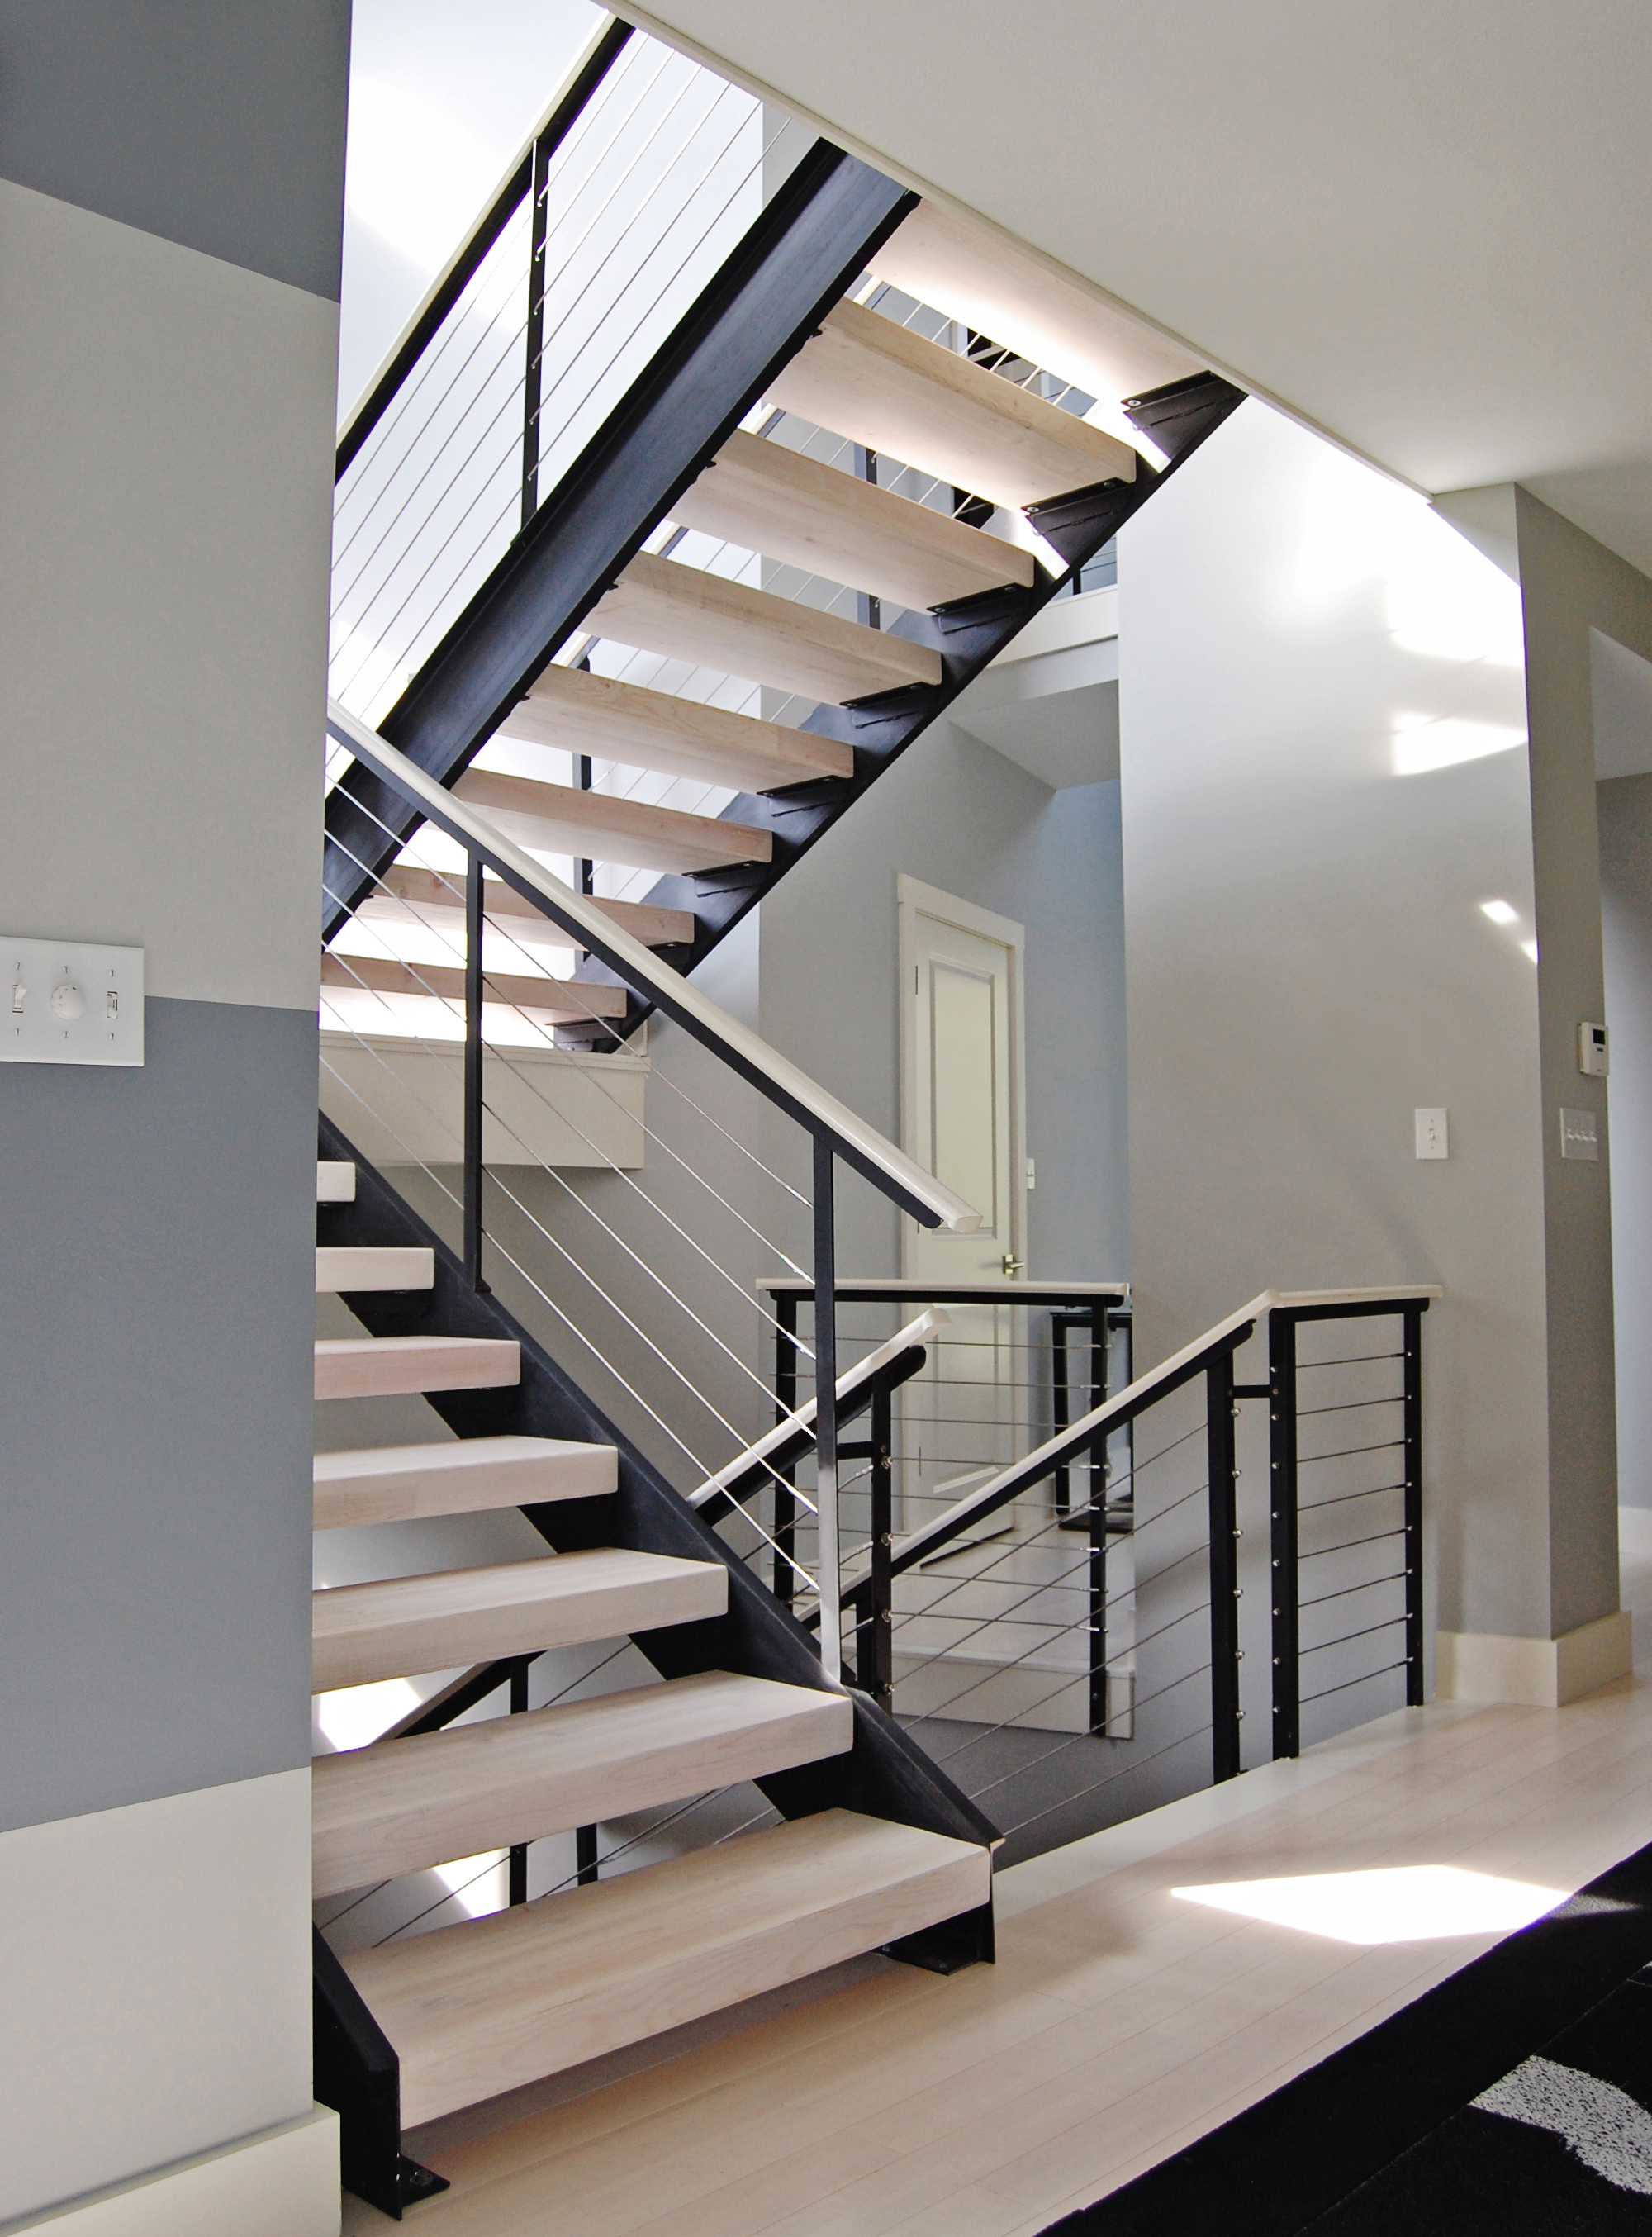 Stair Railing Ideas Cable Infill Ings For Stylish Contemporary Stairway